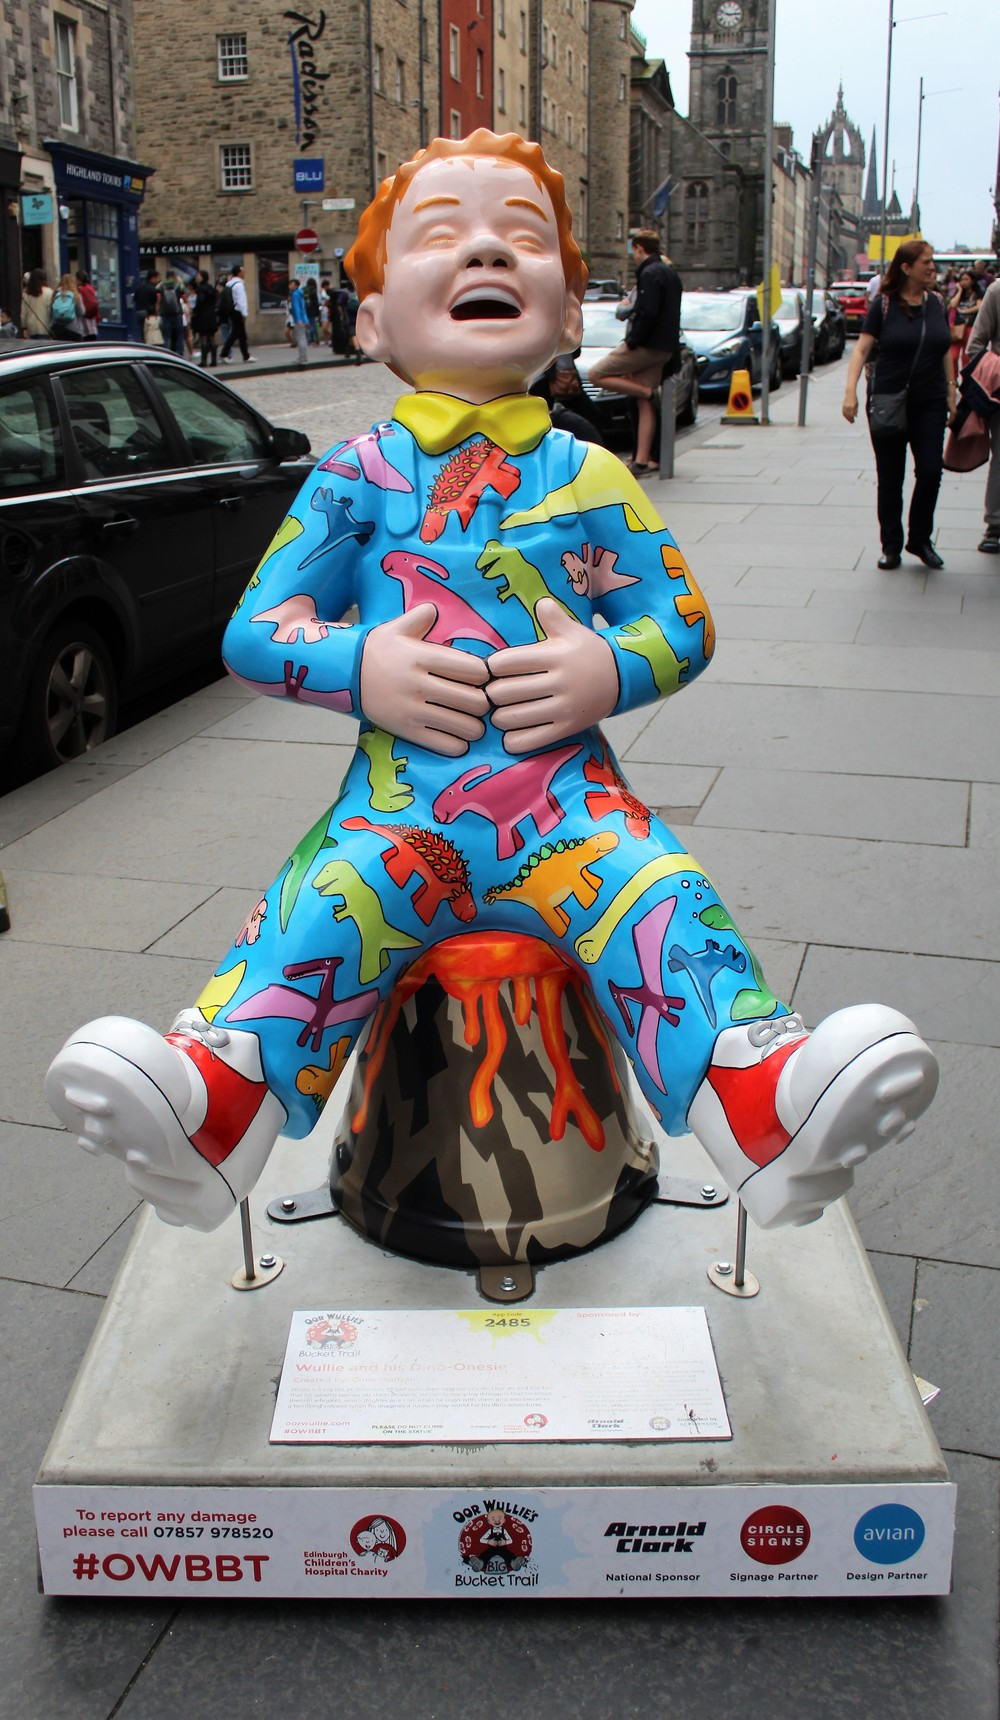 Oor Wullie's Bucket Trail - Wullie and his Dino Onsie